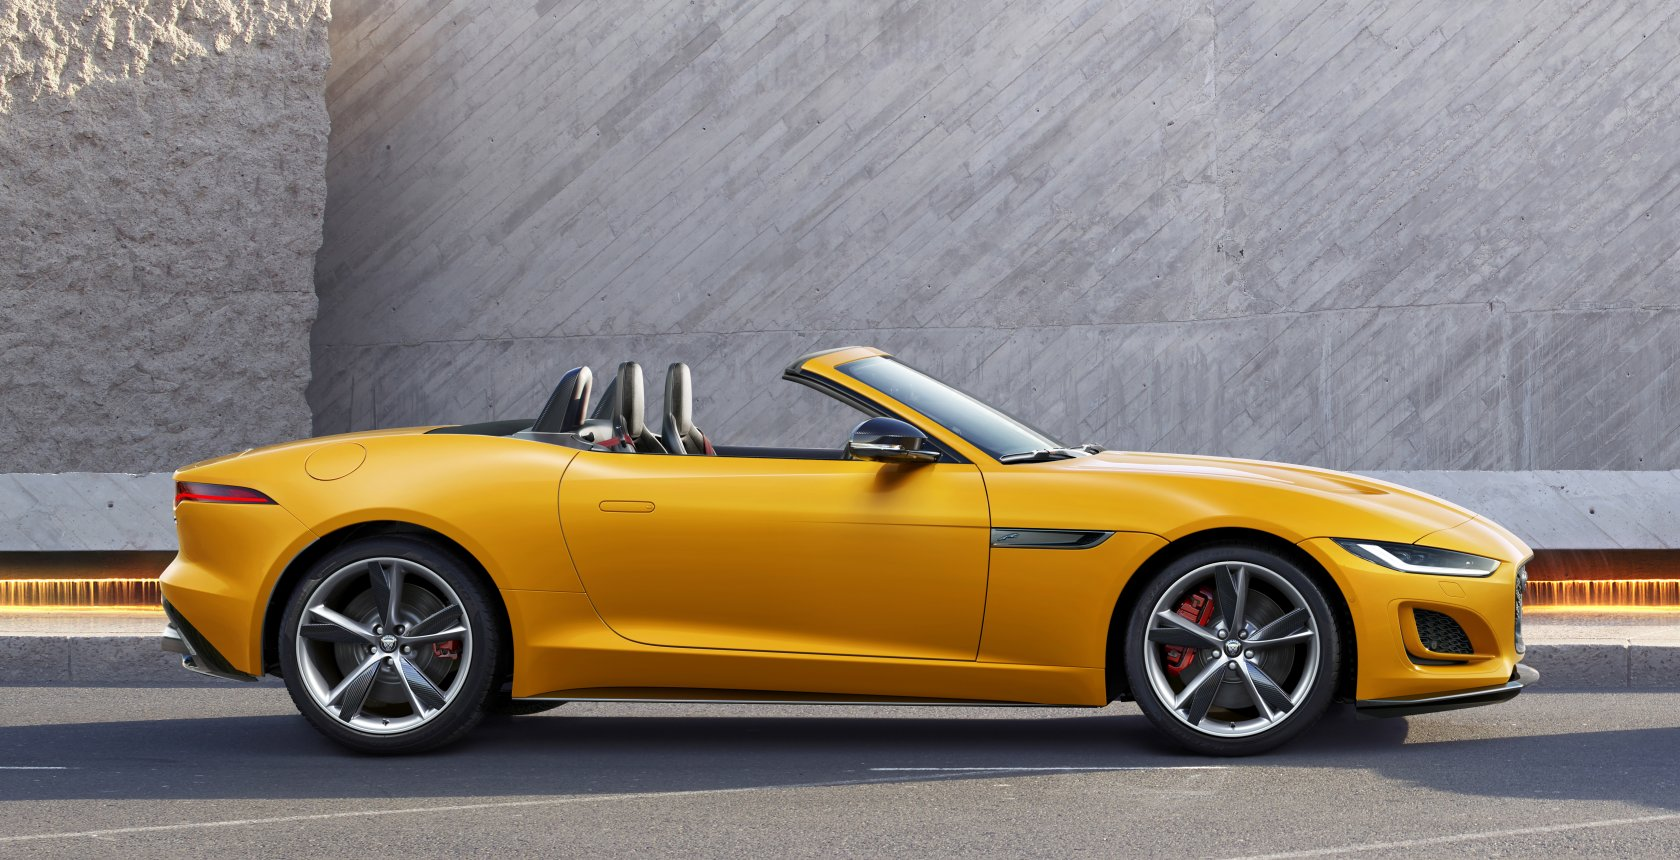 Jag F Type 21 My Reveal Image Lifestyle Convertible Sorrento Yellow 02 12 19